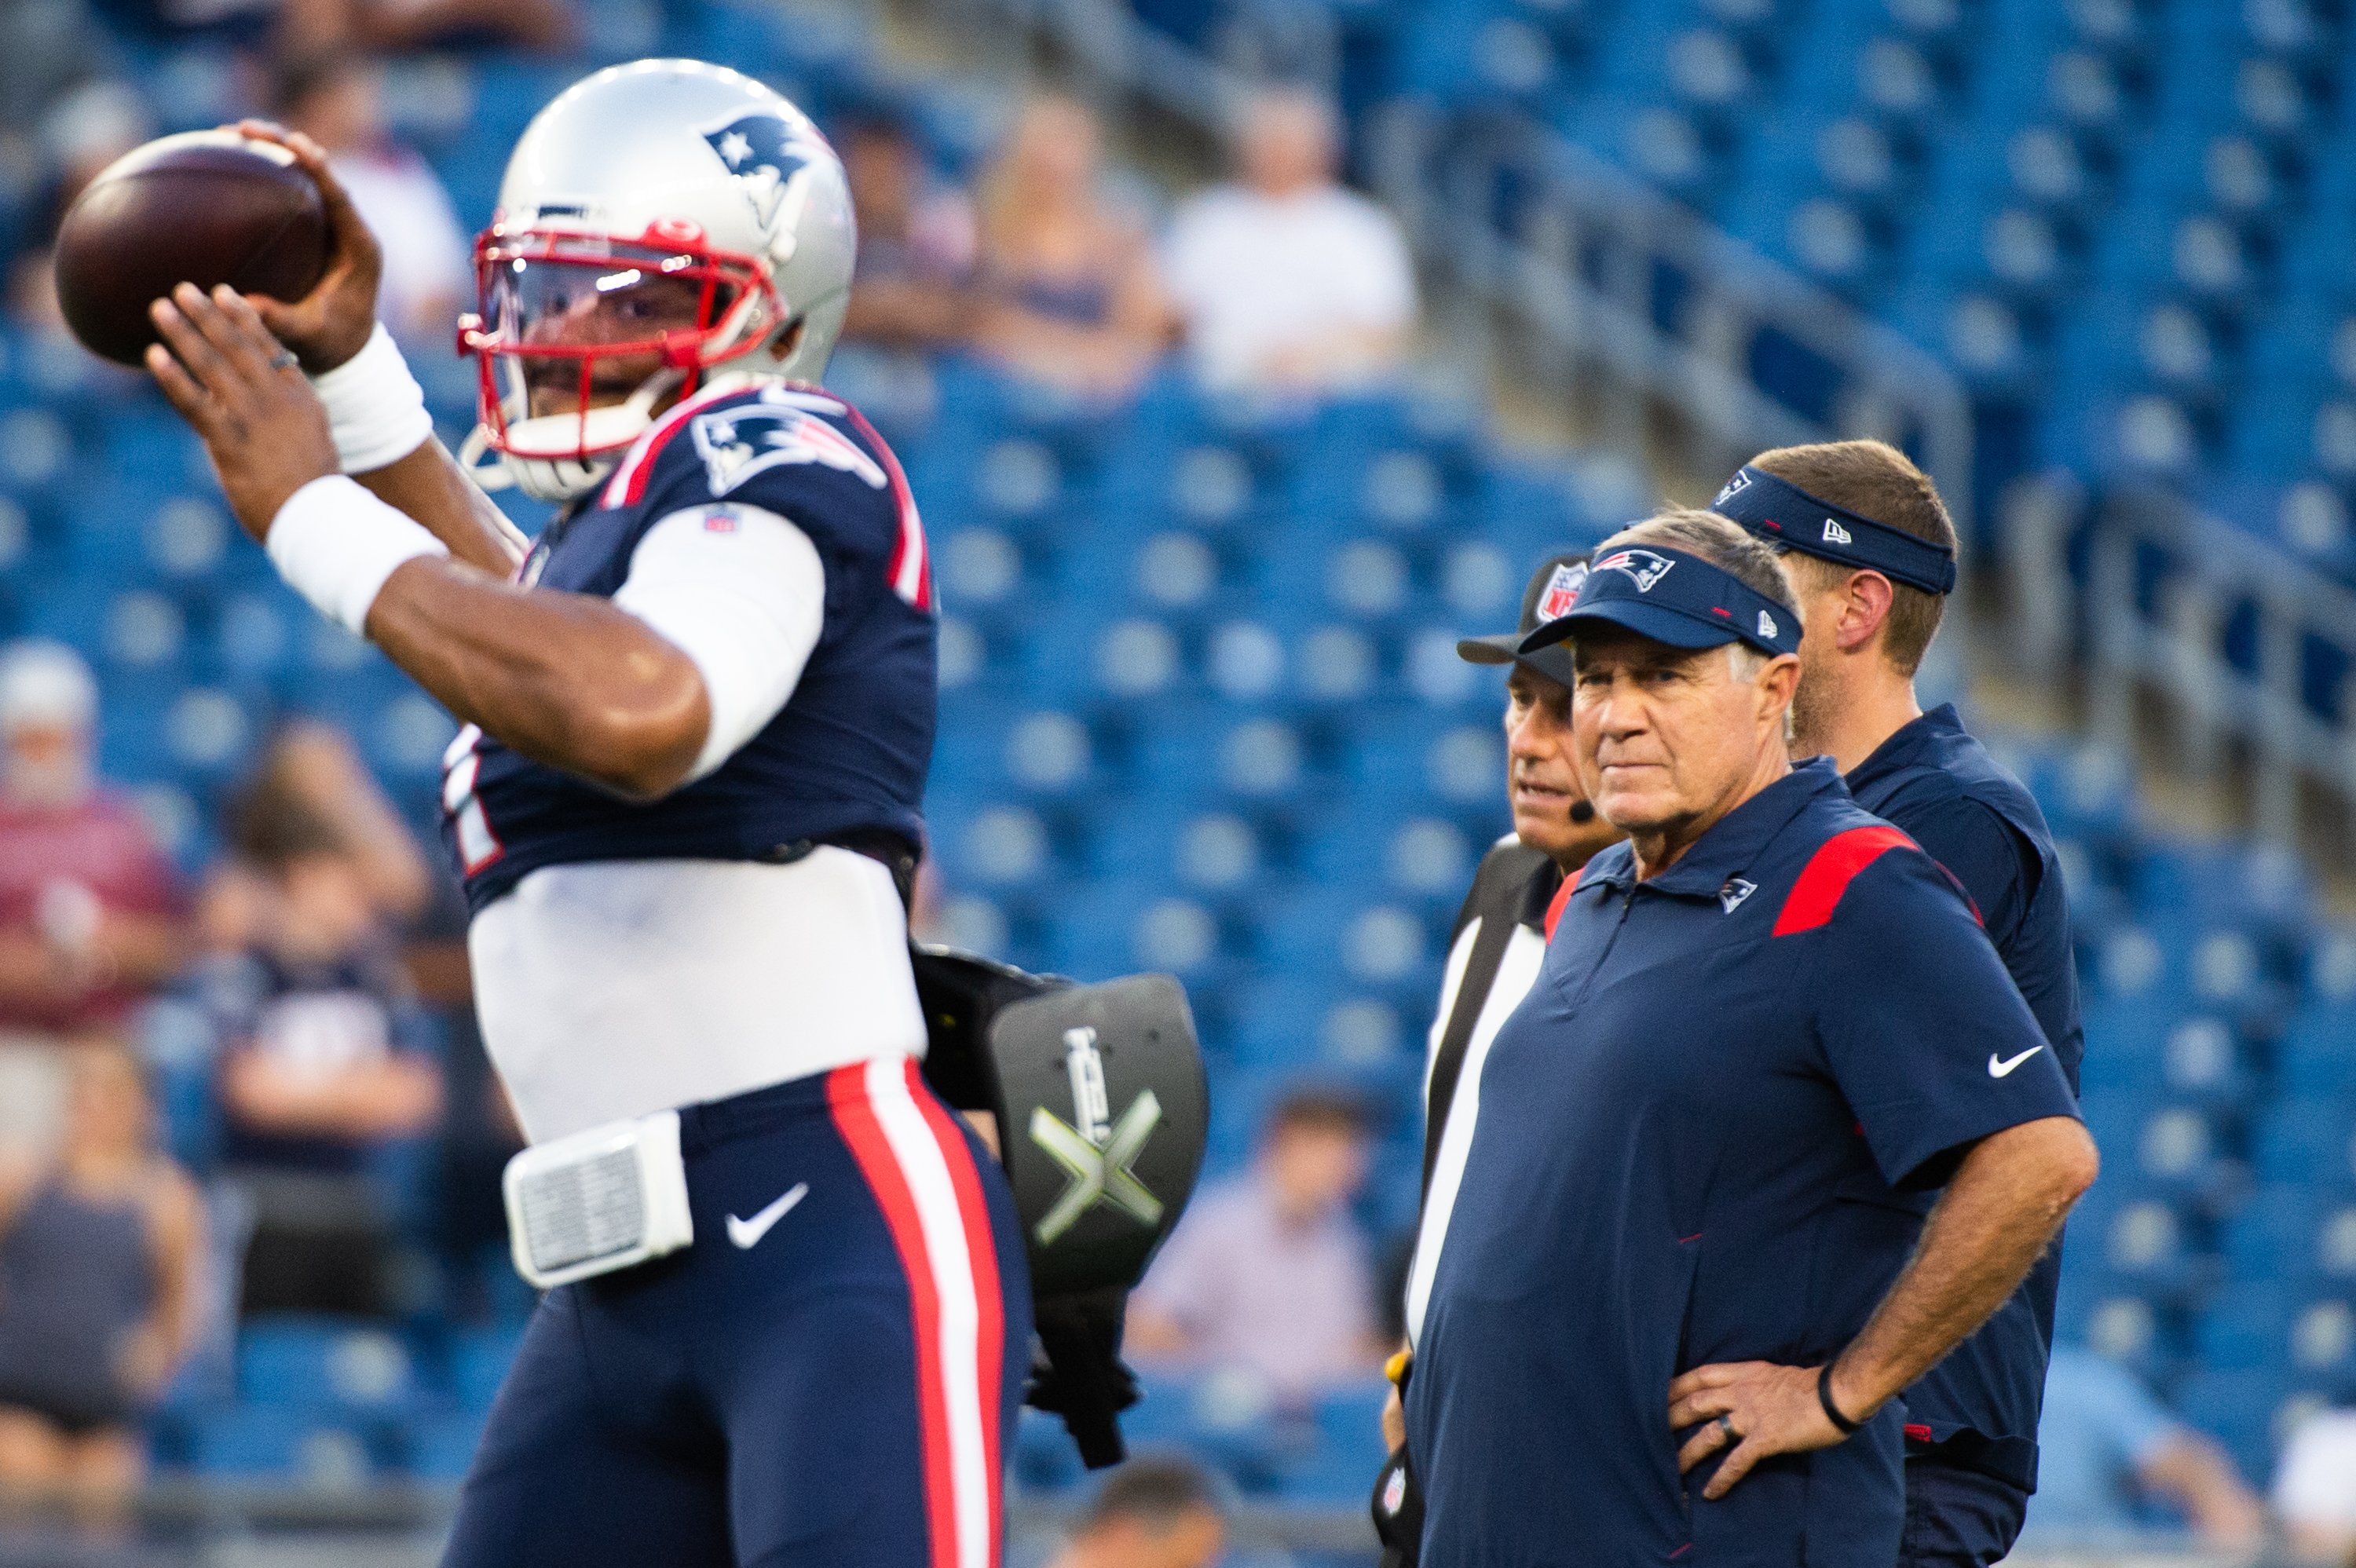 New England Patriots head coach Bill Belichick watches Cam Newton #1 during warm ups prior to the start of the game against the Washington Football Team at Gillette Stadium on August 12, 2021 in Foxborough, Massachusetts.